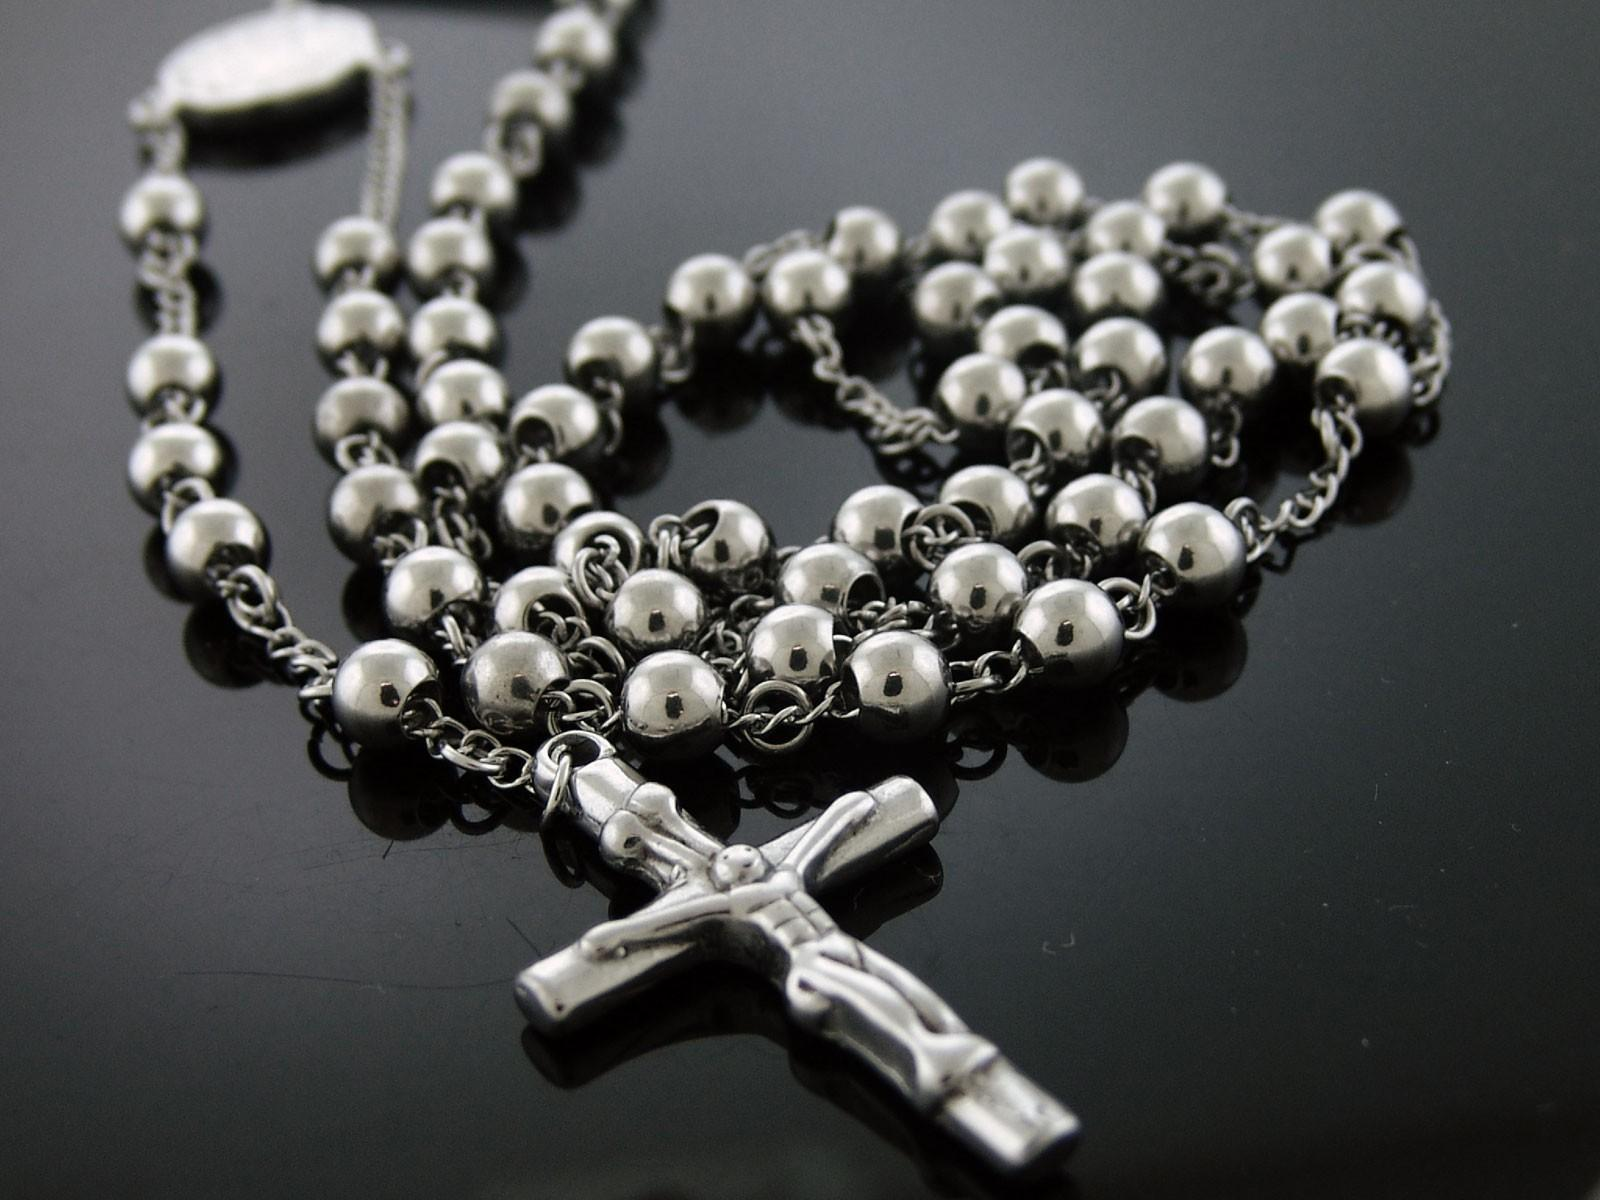 rosary Rosary definition at dictionarycom, a free online dictionary with pronunciation, synonyms and translation look it up now.